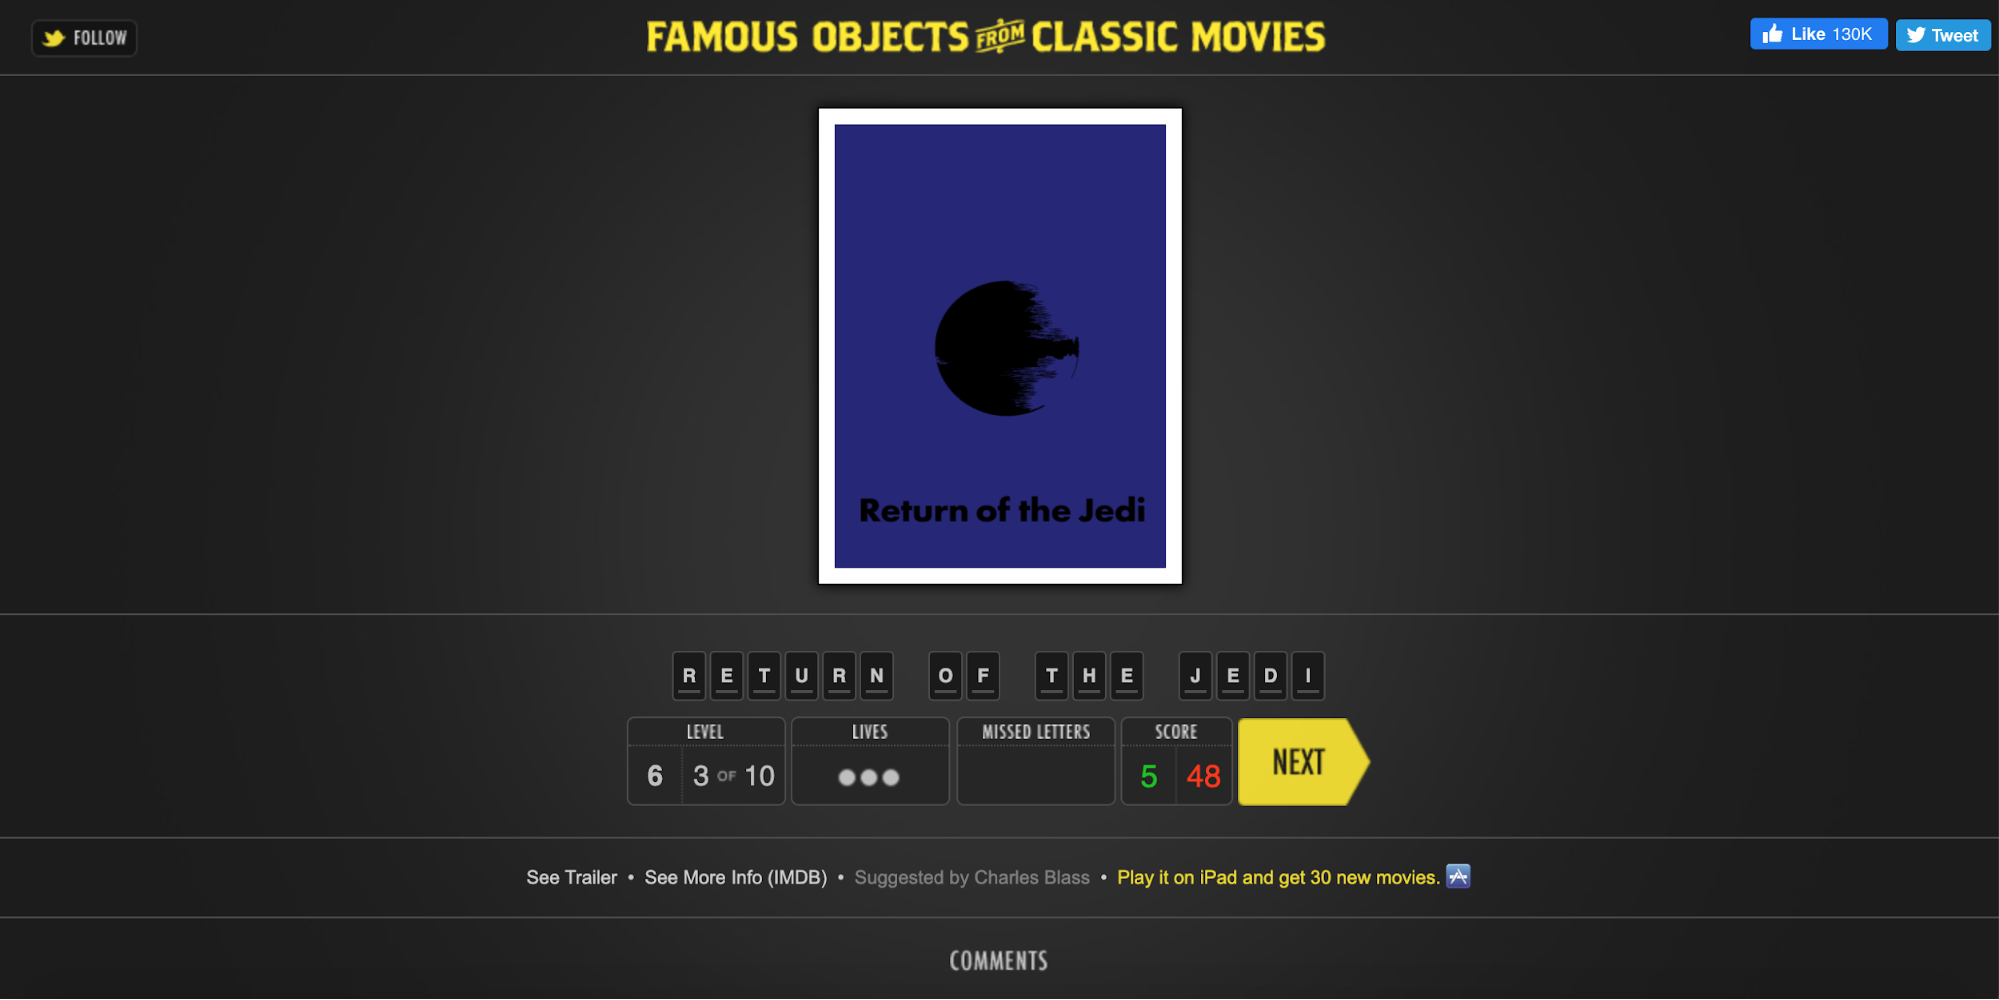 Online games: famous objects from classic movies